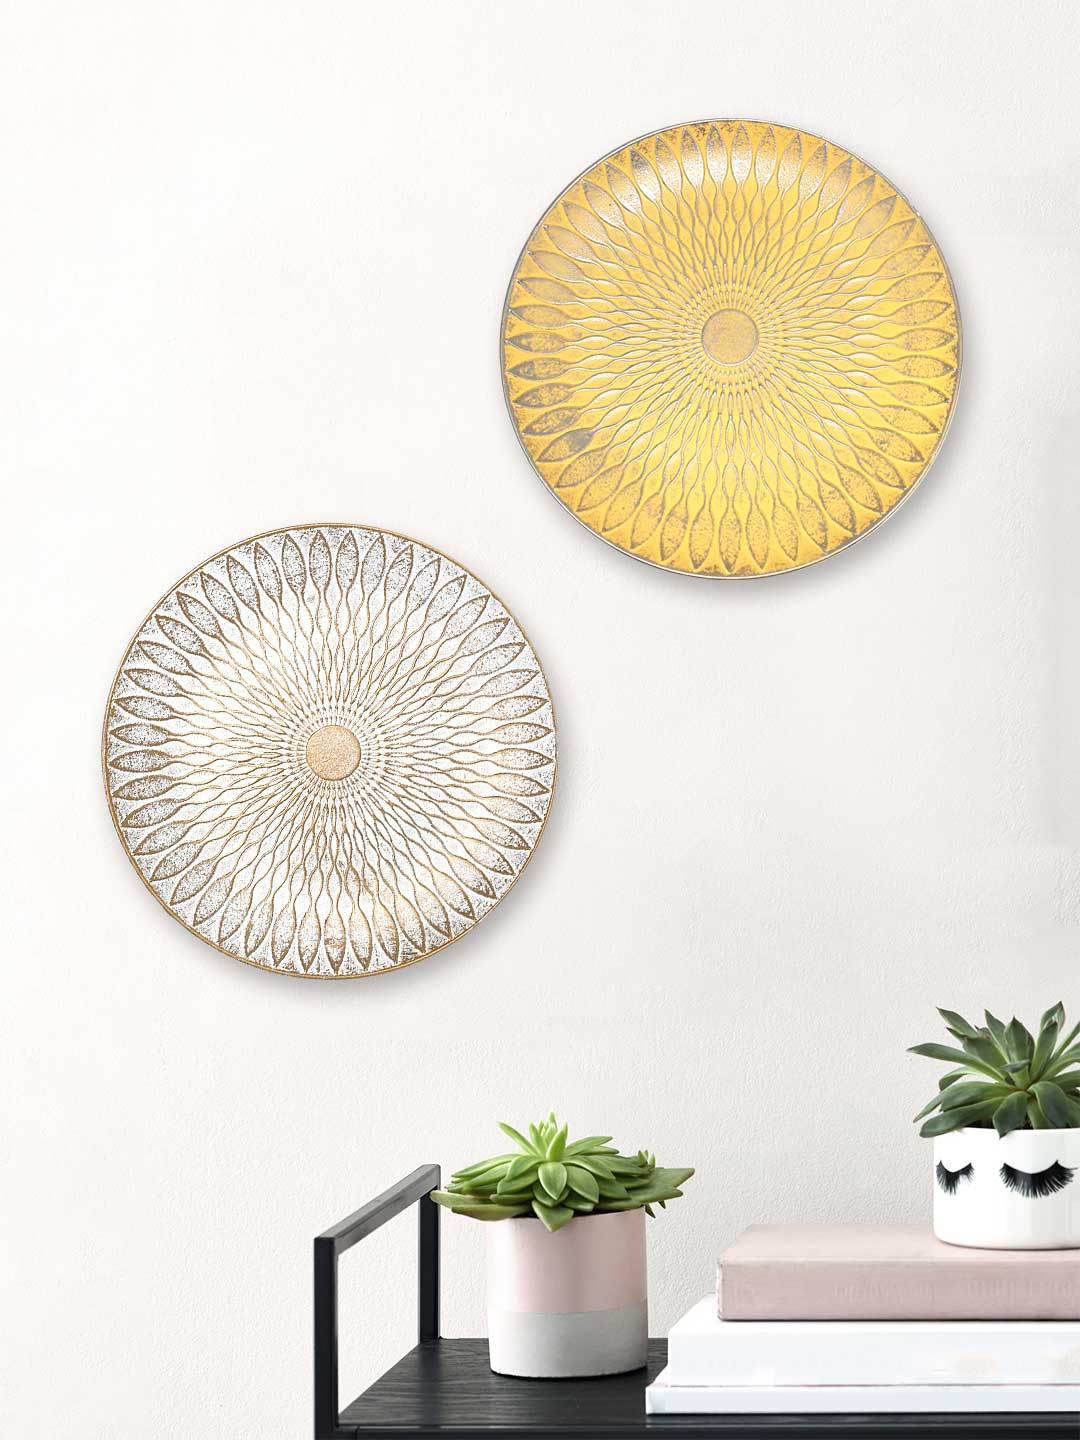 Art Street Set of 2 MDF Decorative Wall Plates Wall Decor Plates for Home   Office